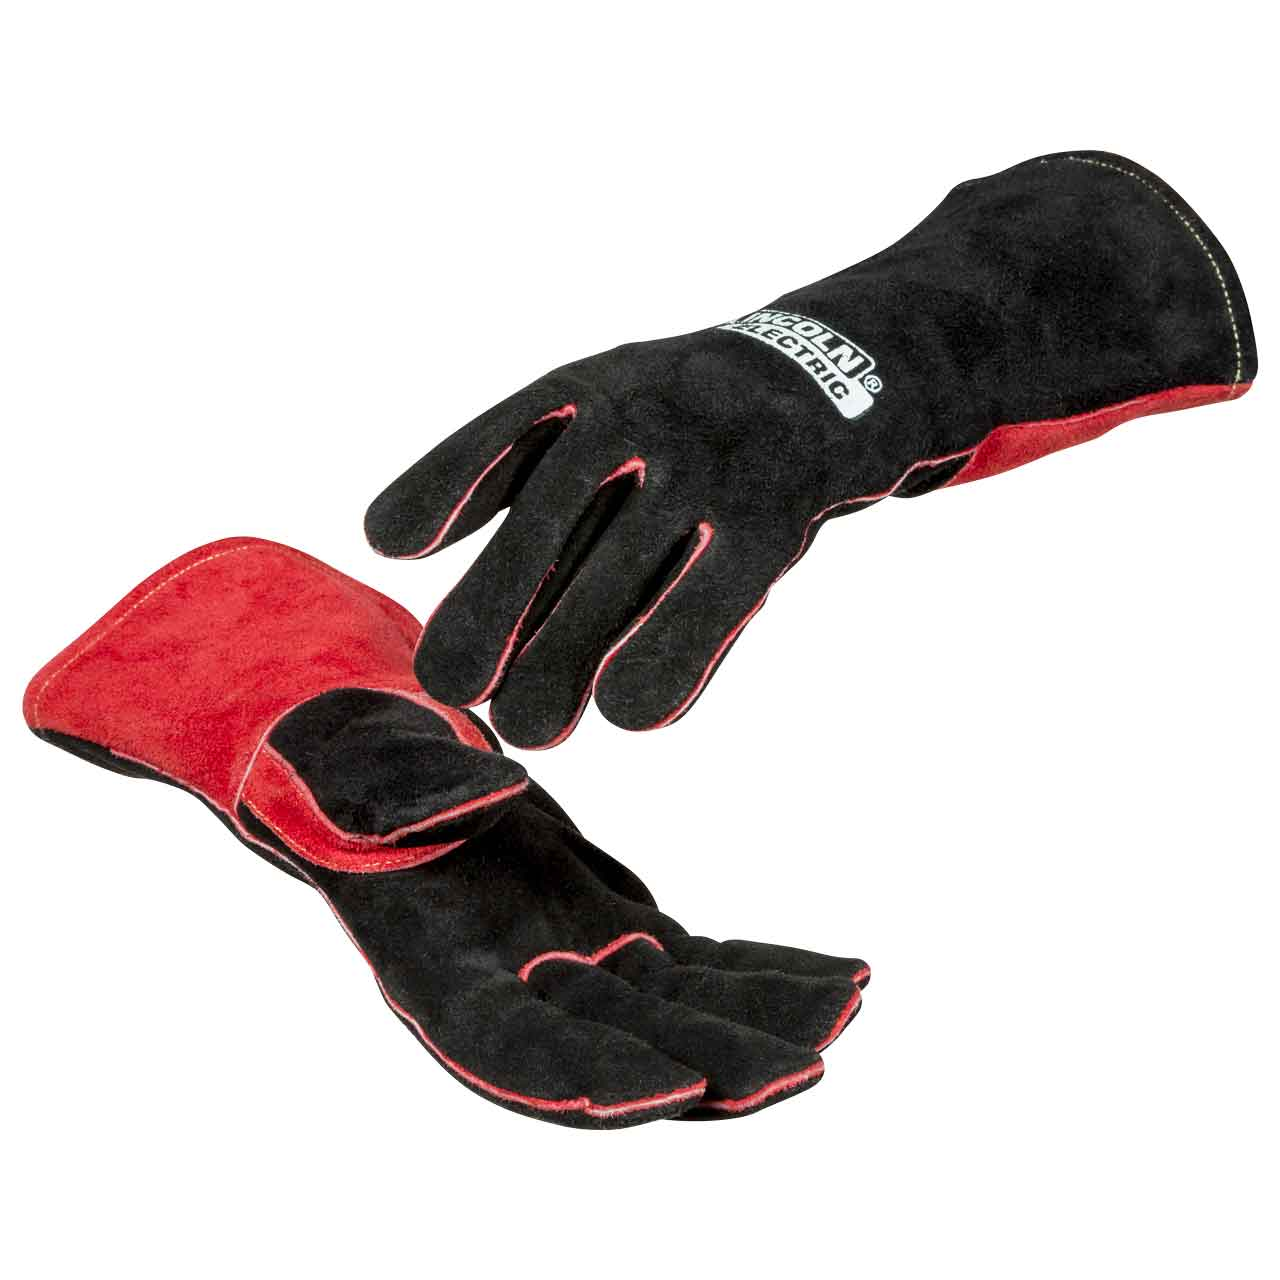 Lincoln Electric K3232 Jessi Combs Women's MIG/Stick Welding Gloves, Small to Medium